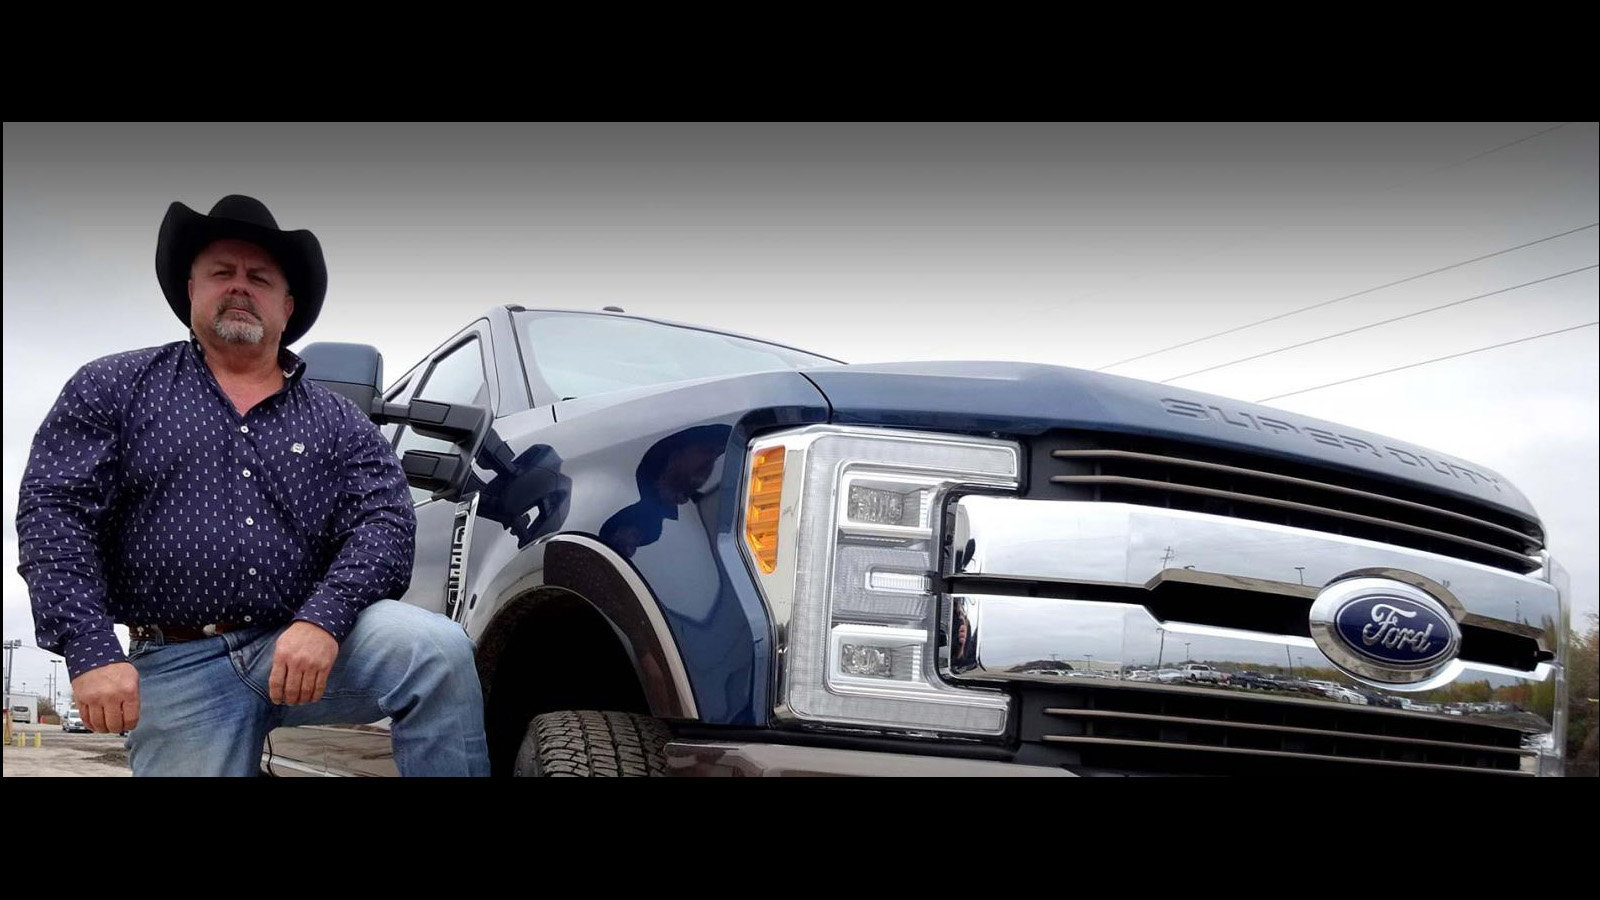 Larry Dunn uses King Ranch edition F-Series Truck